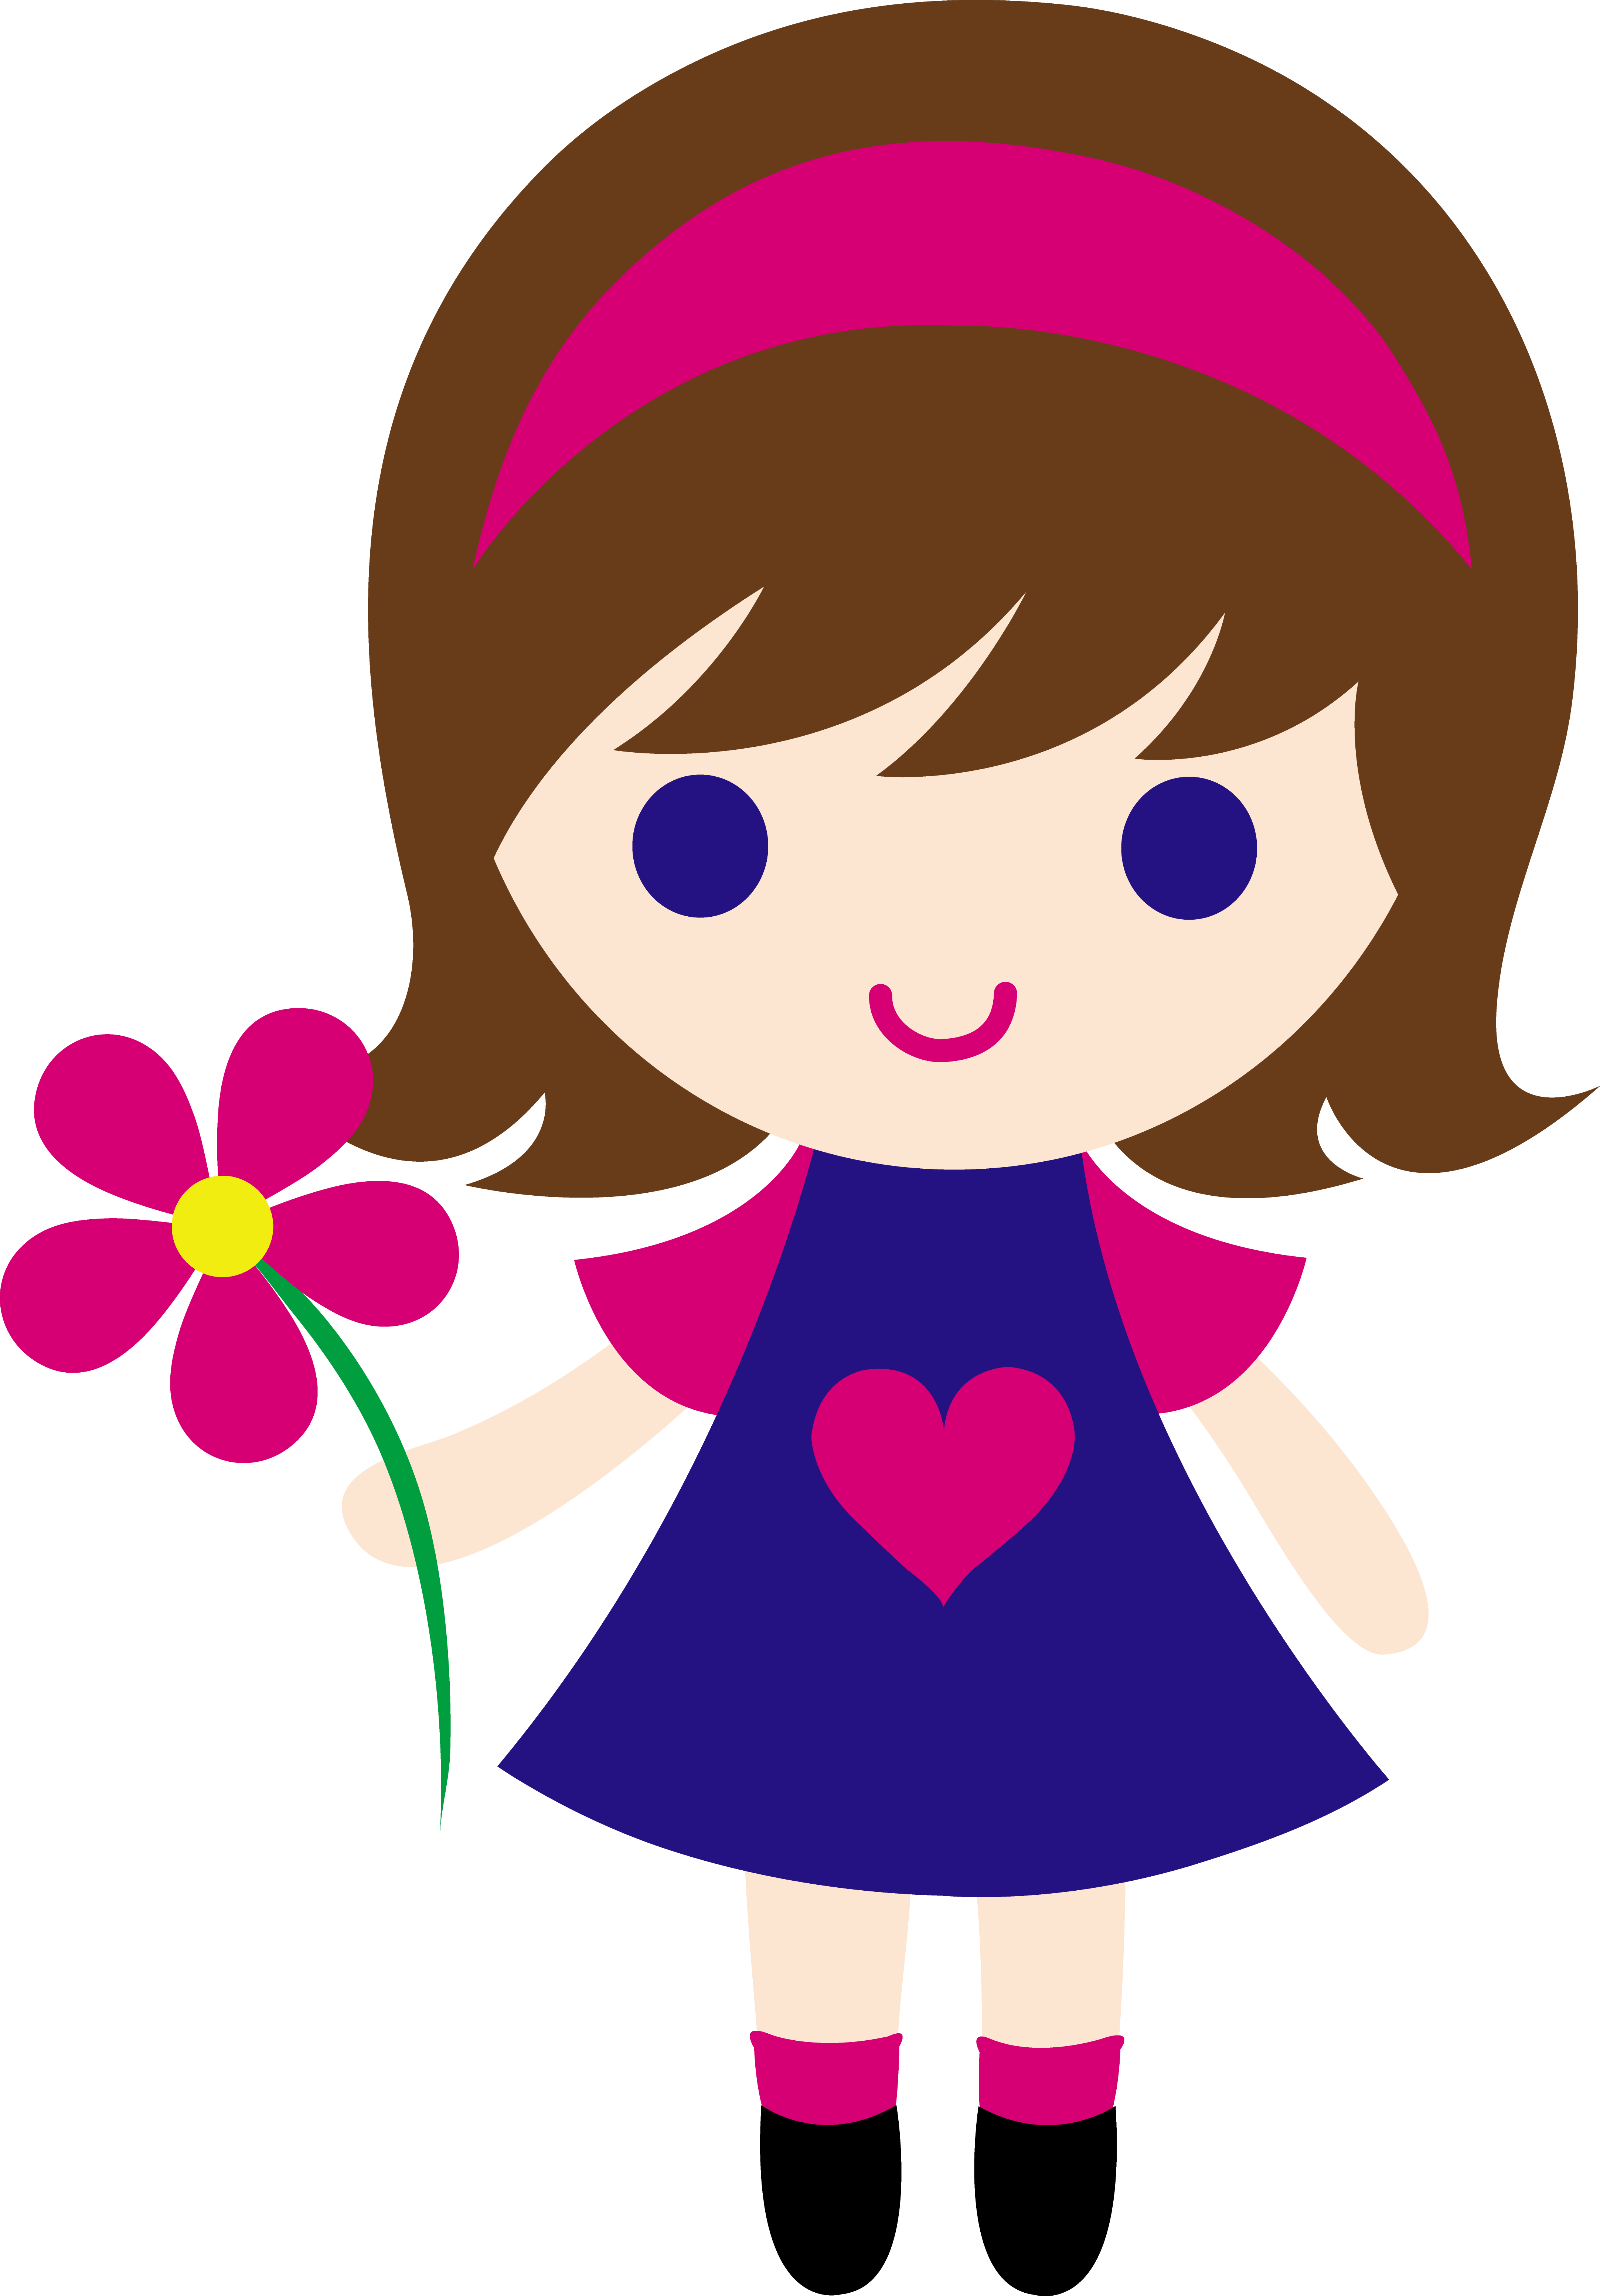 pretty girl clipart at getdrawings com free for personal use rh getdrawings com pretty girl clipart pretty little girl clipart